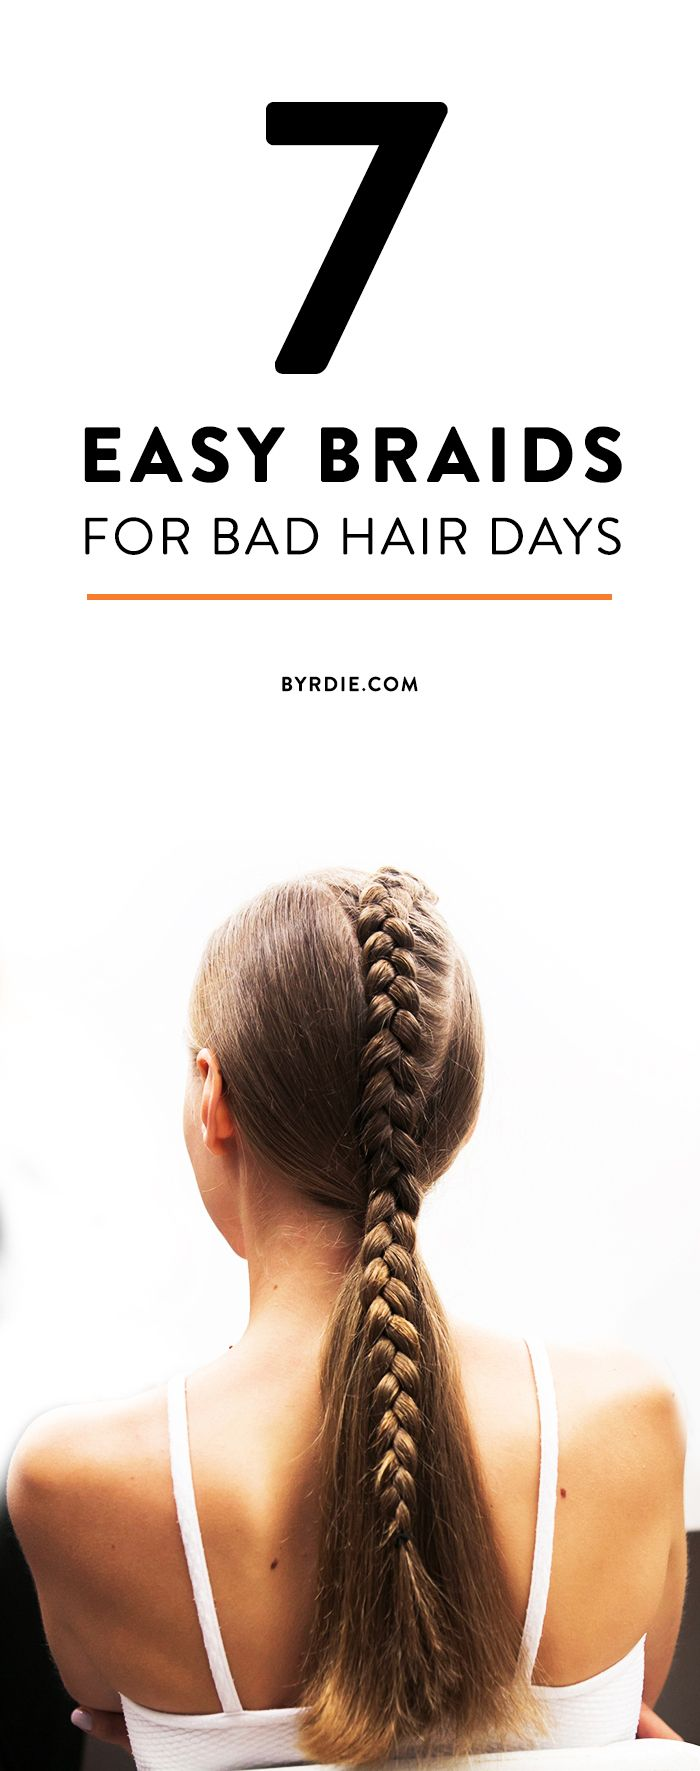 Easy braids to try